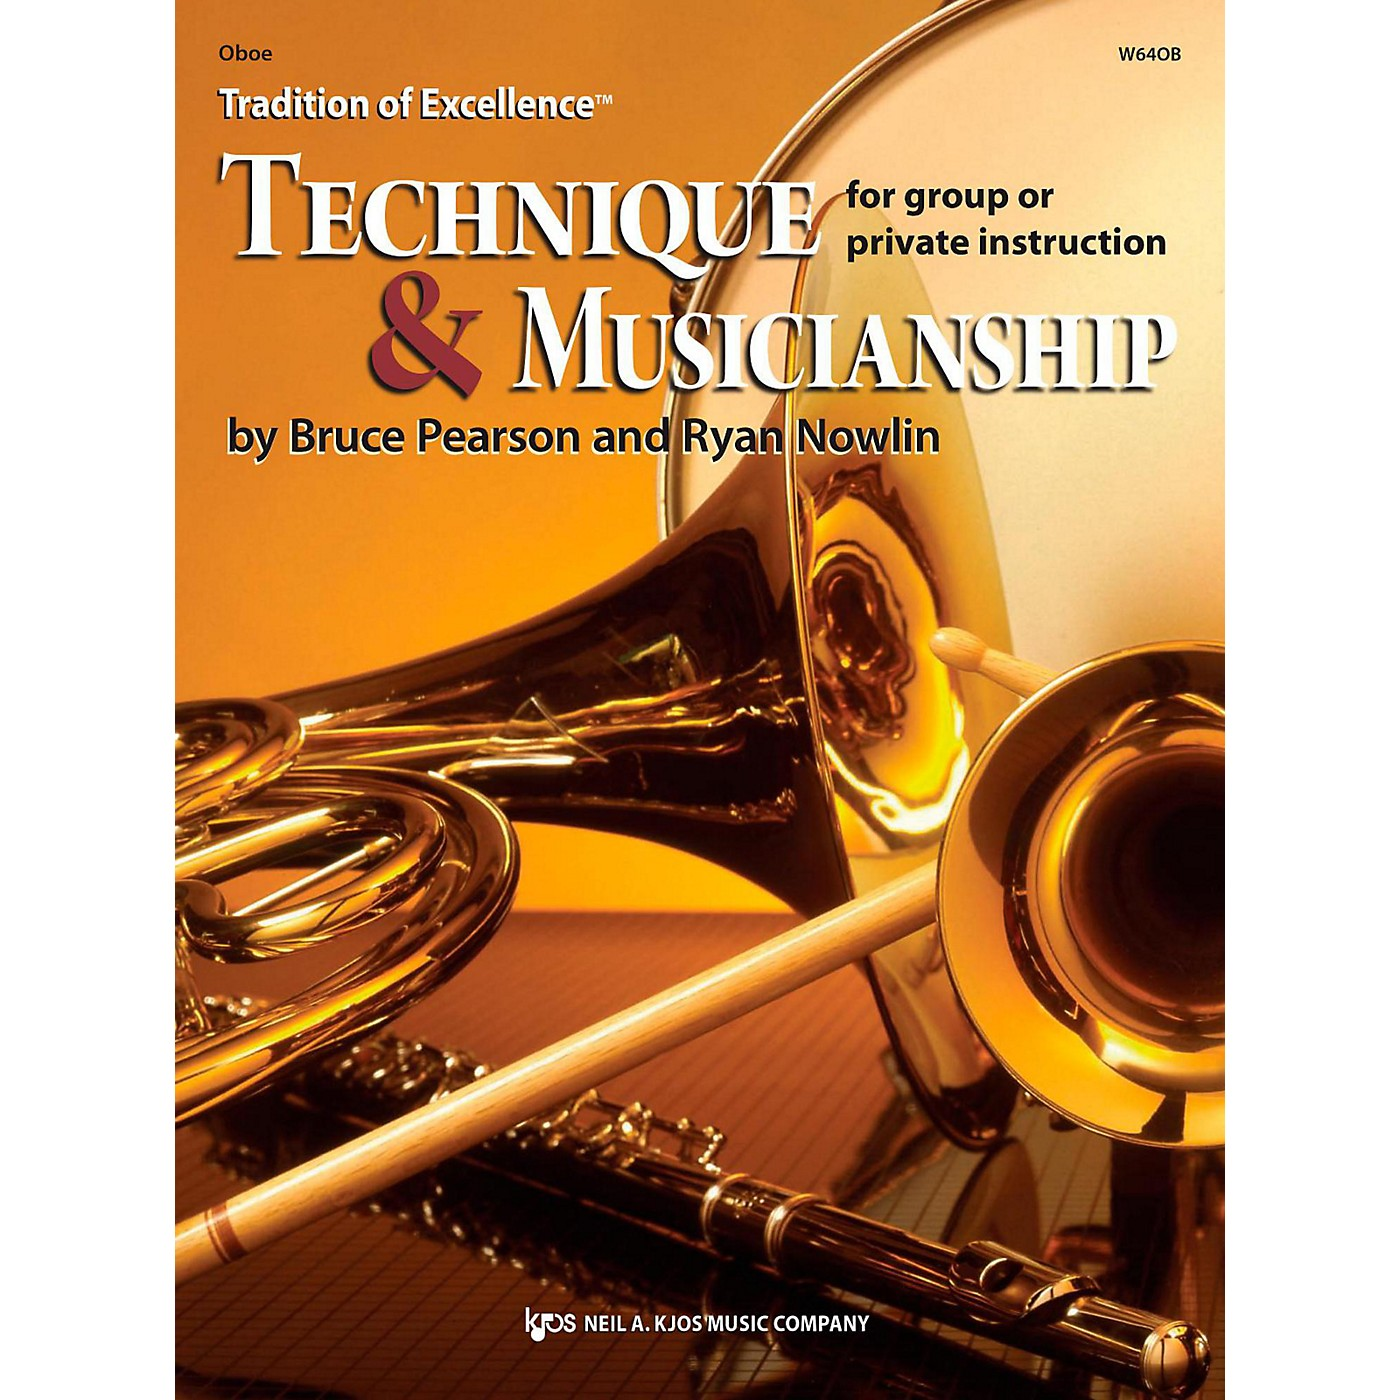 KJOS Tradition of Excellence: Technique & Musicianship Oboe thumbnail